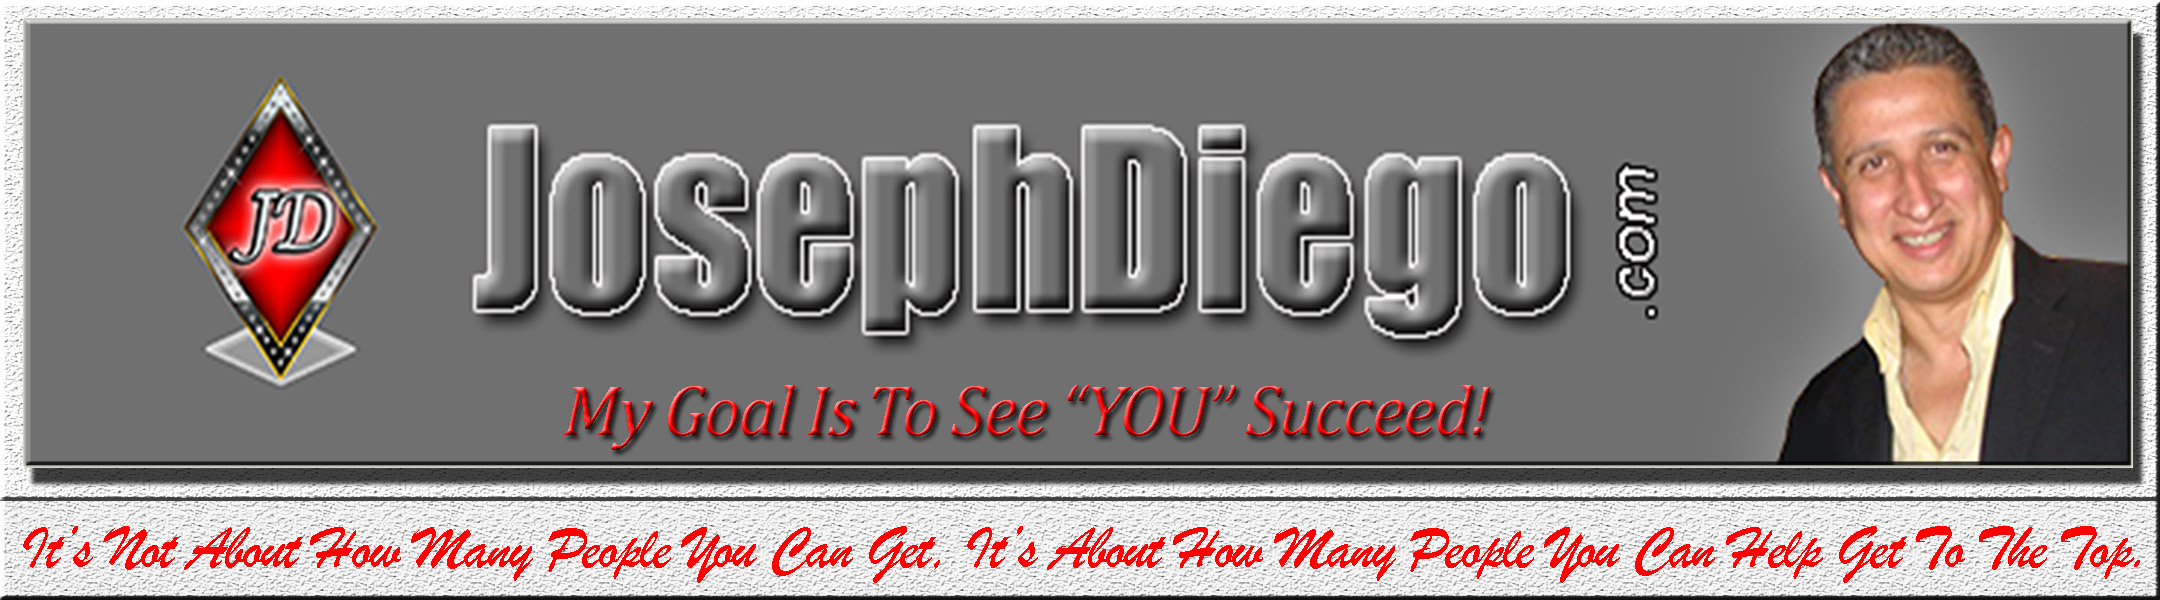 JosephDiego Home Based Business /  Network Marketing Entrepreneur Coach